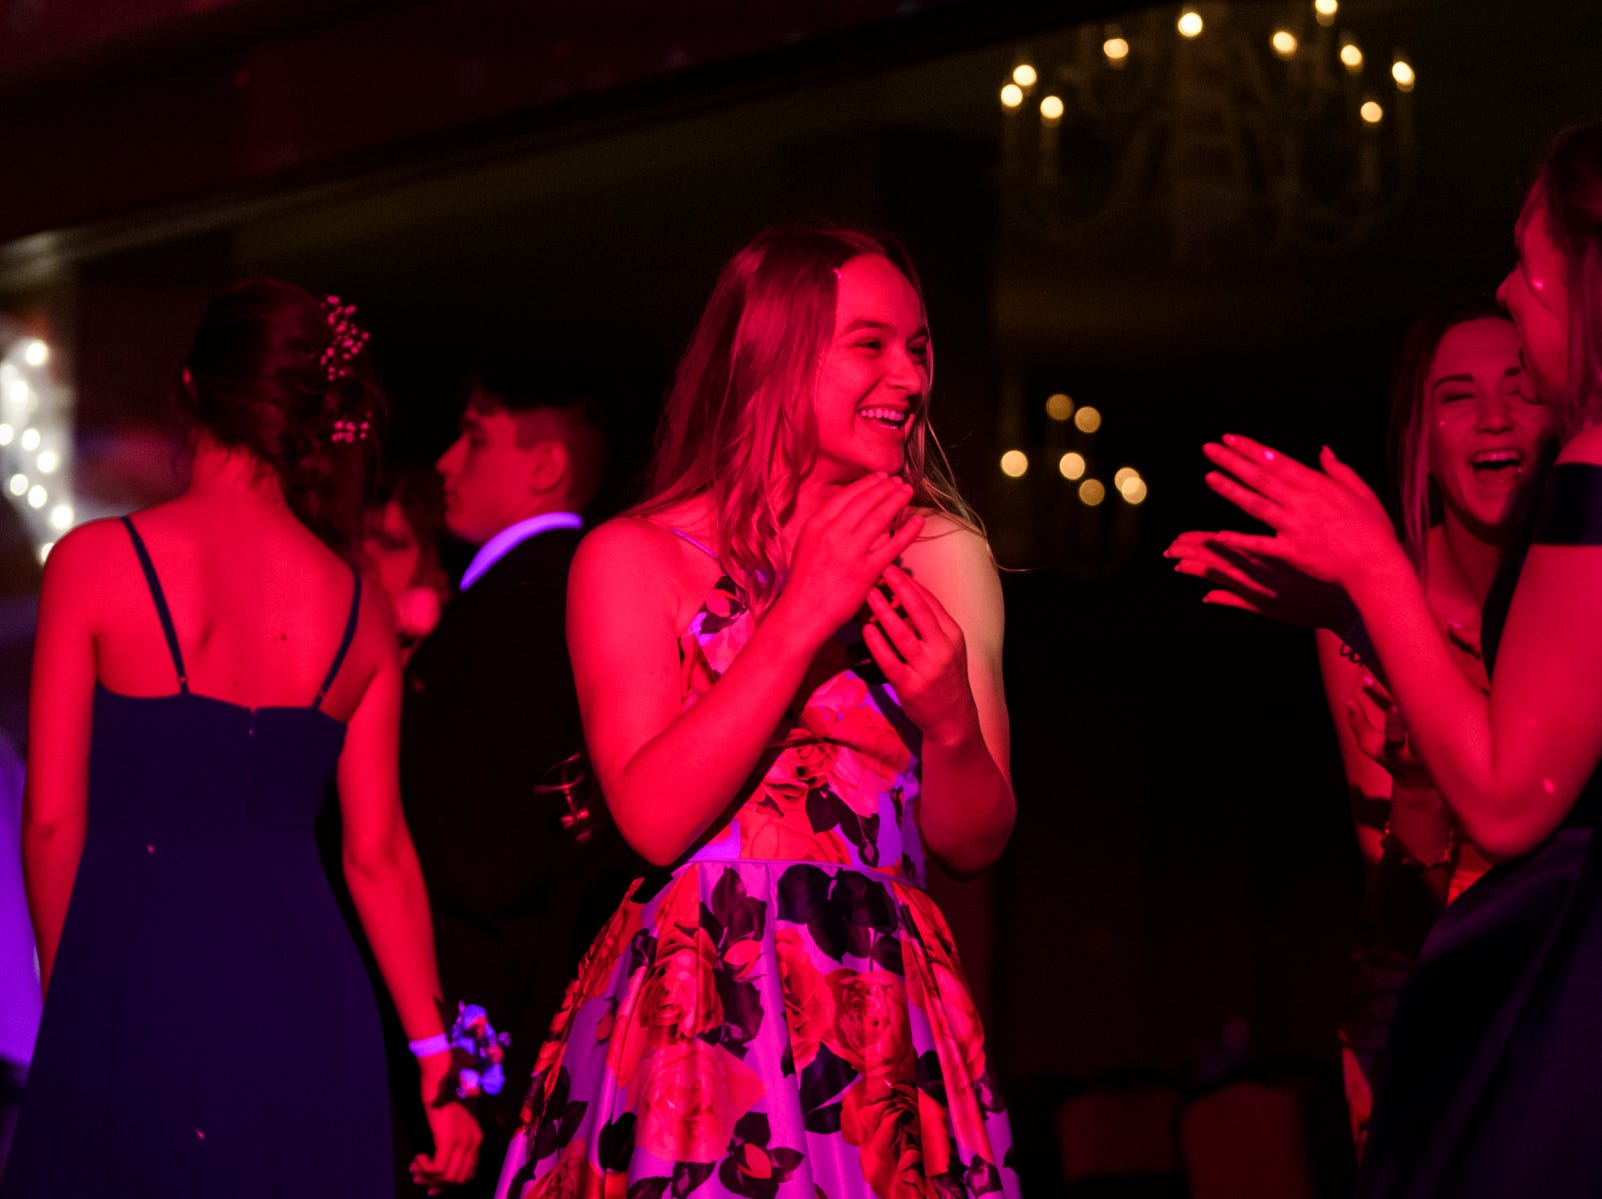 Lily Burke, center, laughs as she dances with friends CC Risewick, front right, and Kaitlin Zuzich, back right, during Evansville Day School's prom held at the Hadi Shrine Banquet Hall in downtown Evansville, Ind., Saturday, April 27, 2019.